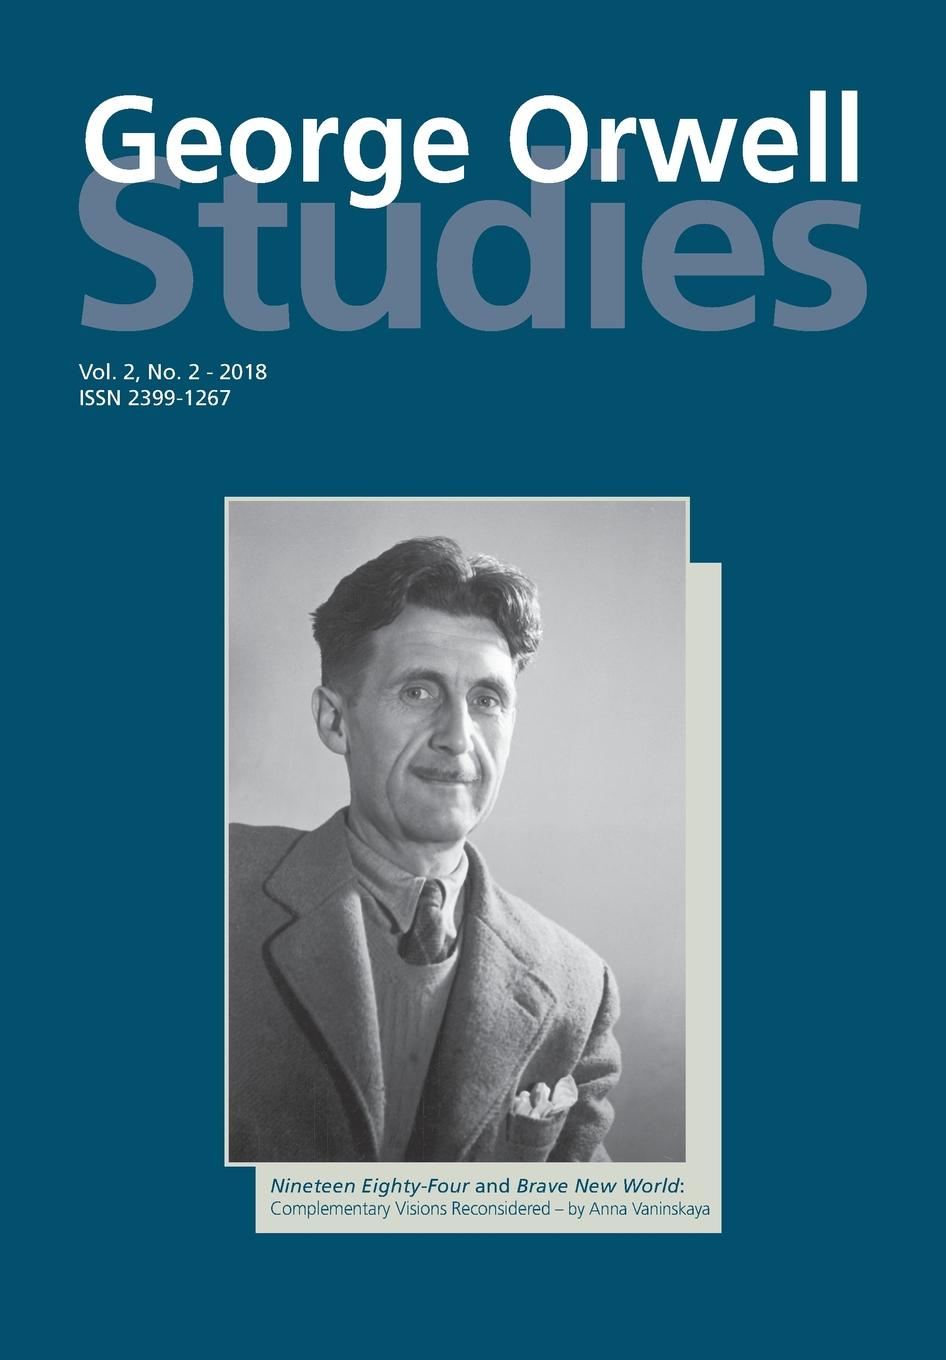 George Orwell Studies Vol.2 No.2 threat and warning acts in george orwell s novel 1984